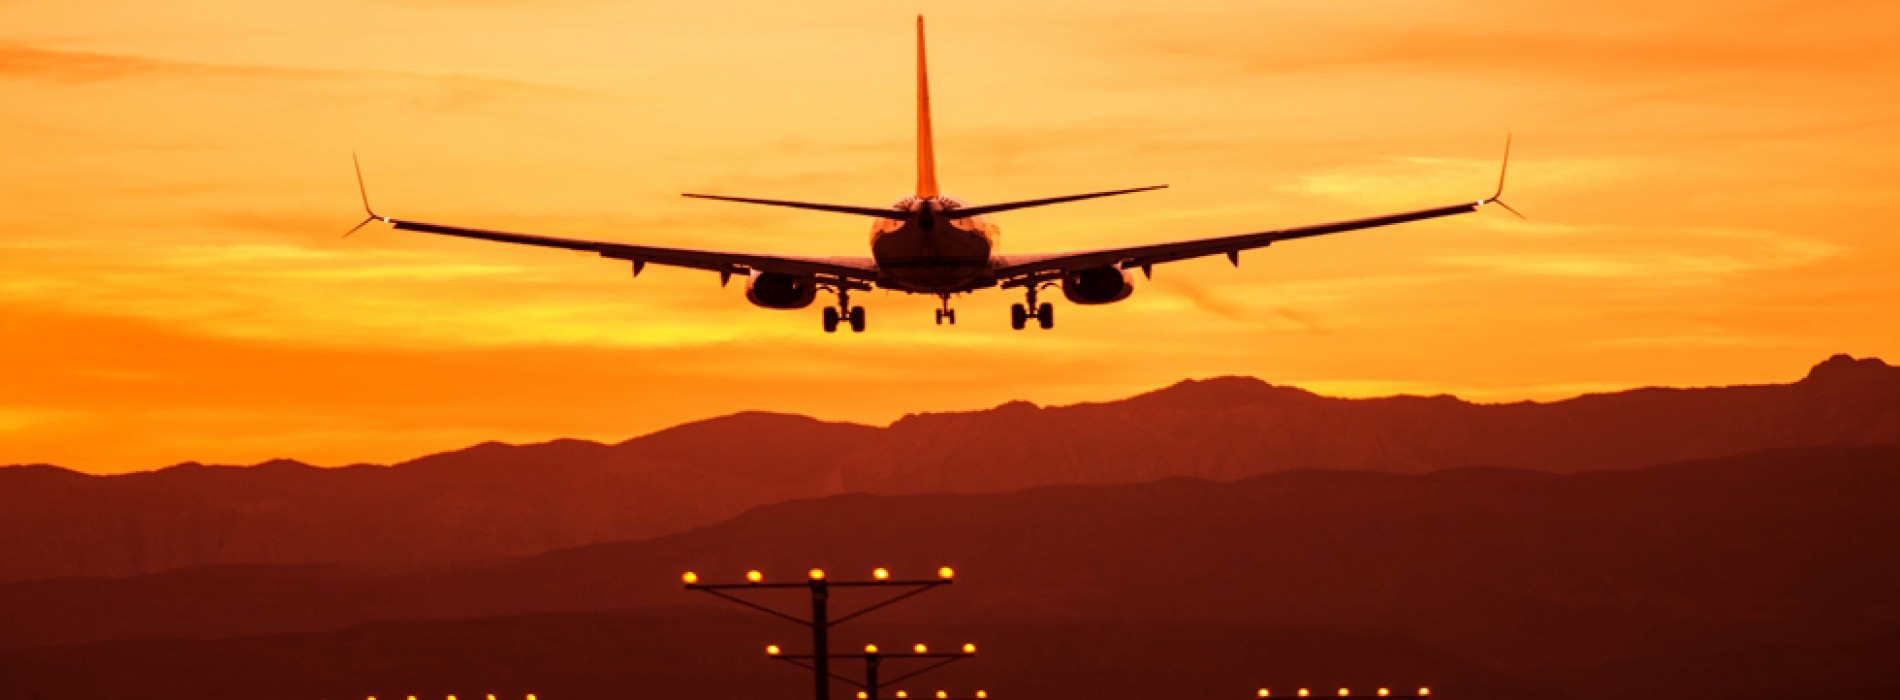 India-UK deal to allow more flights to boost tourism and trade for global India & Britain